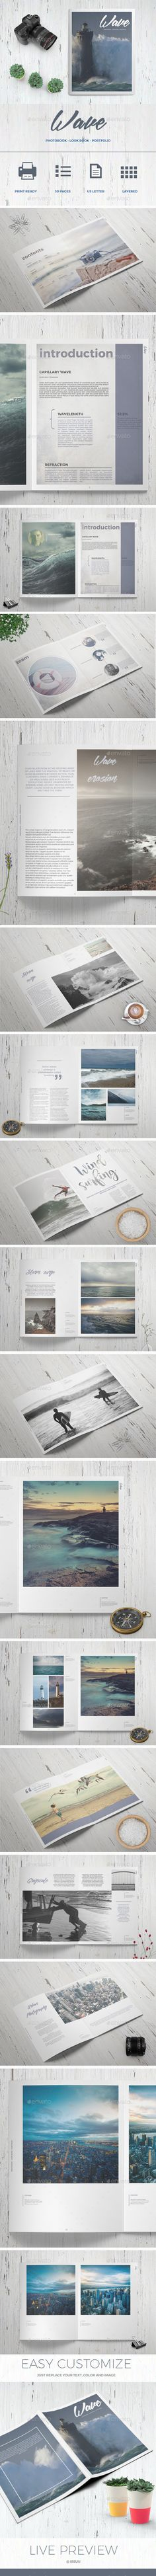 Wave - Photo Book  #minimal #modern #personal • Available here → http://graphicriver.net/item/wave-photo-book/15540507?ref=pxcr